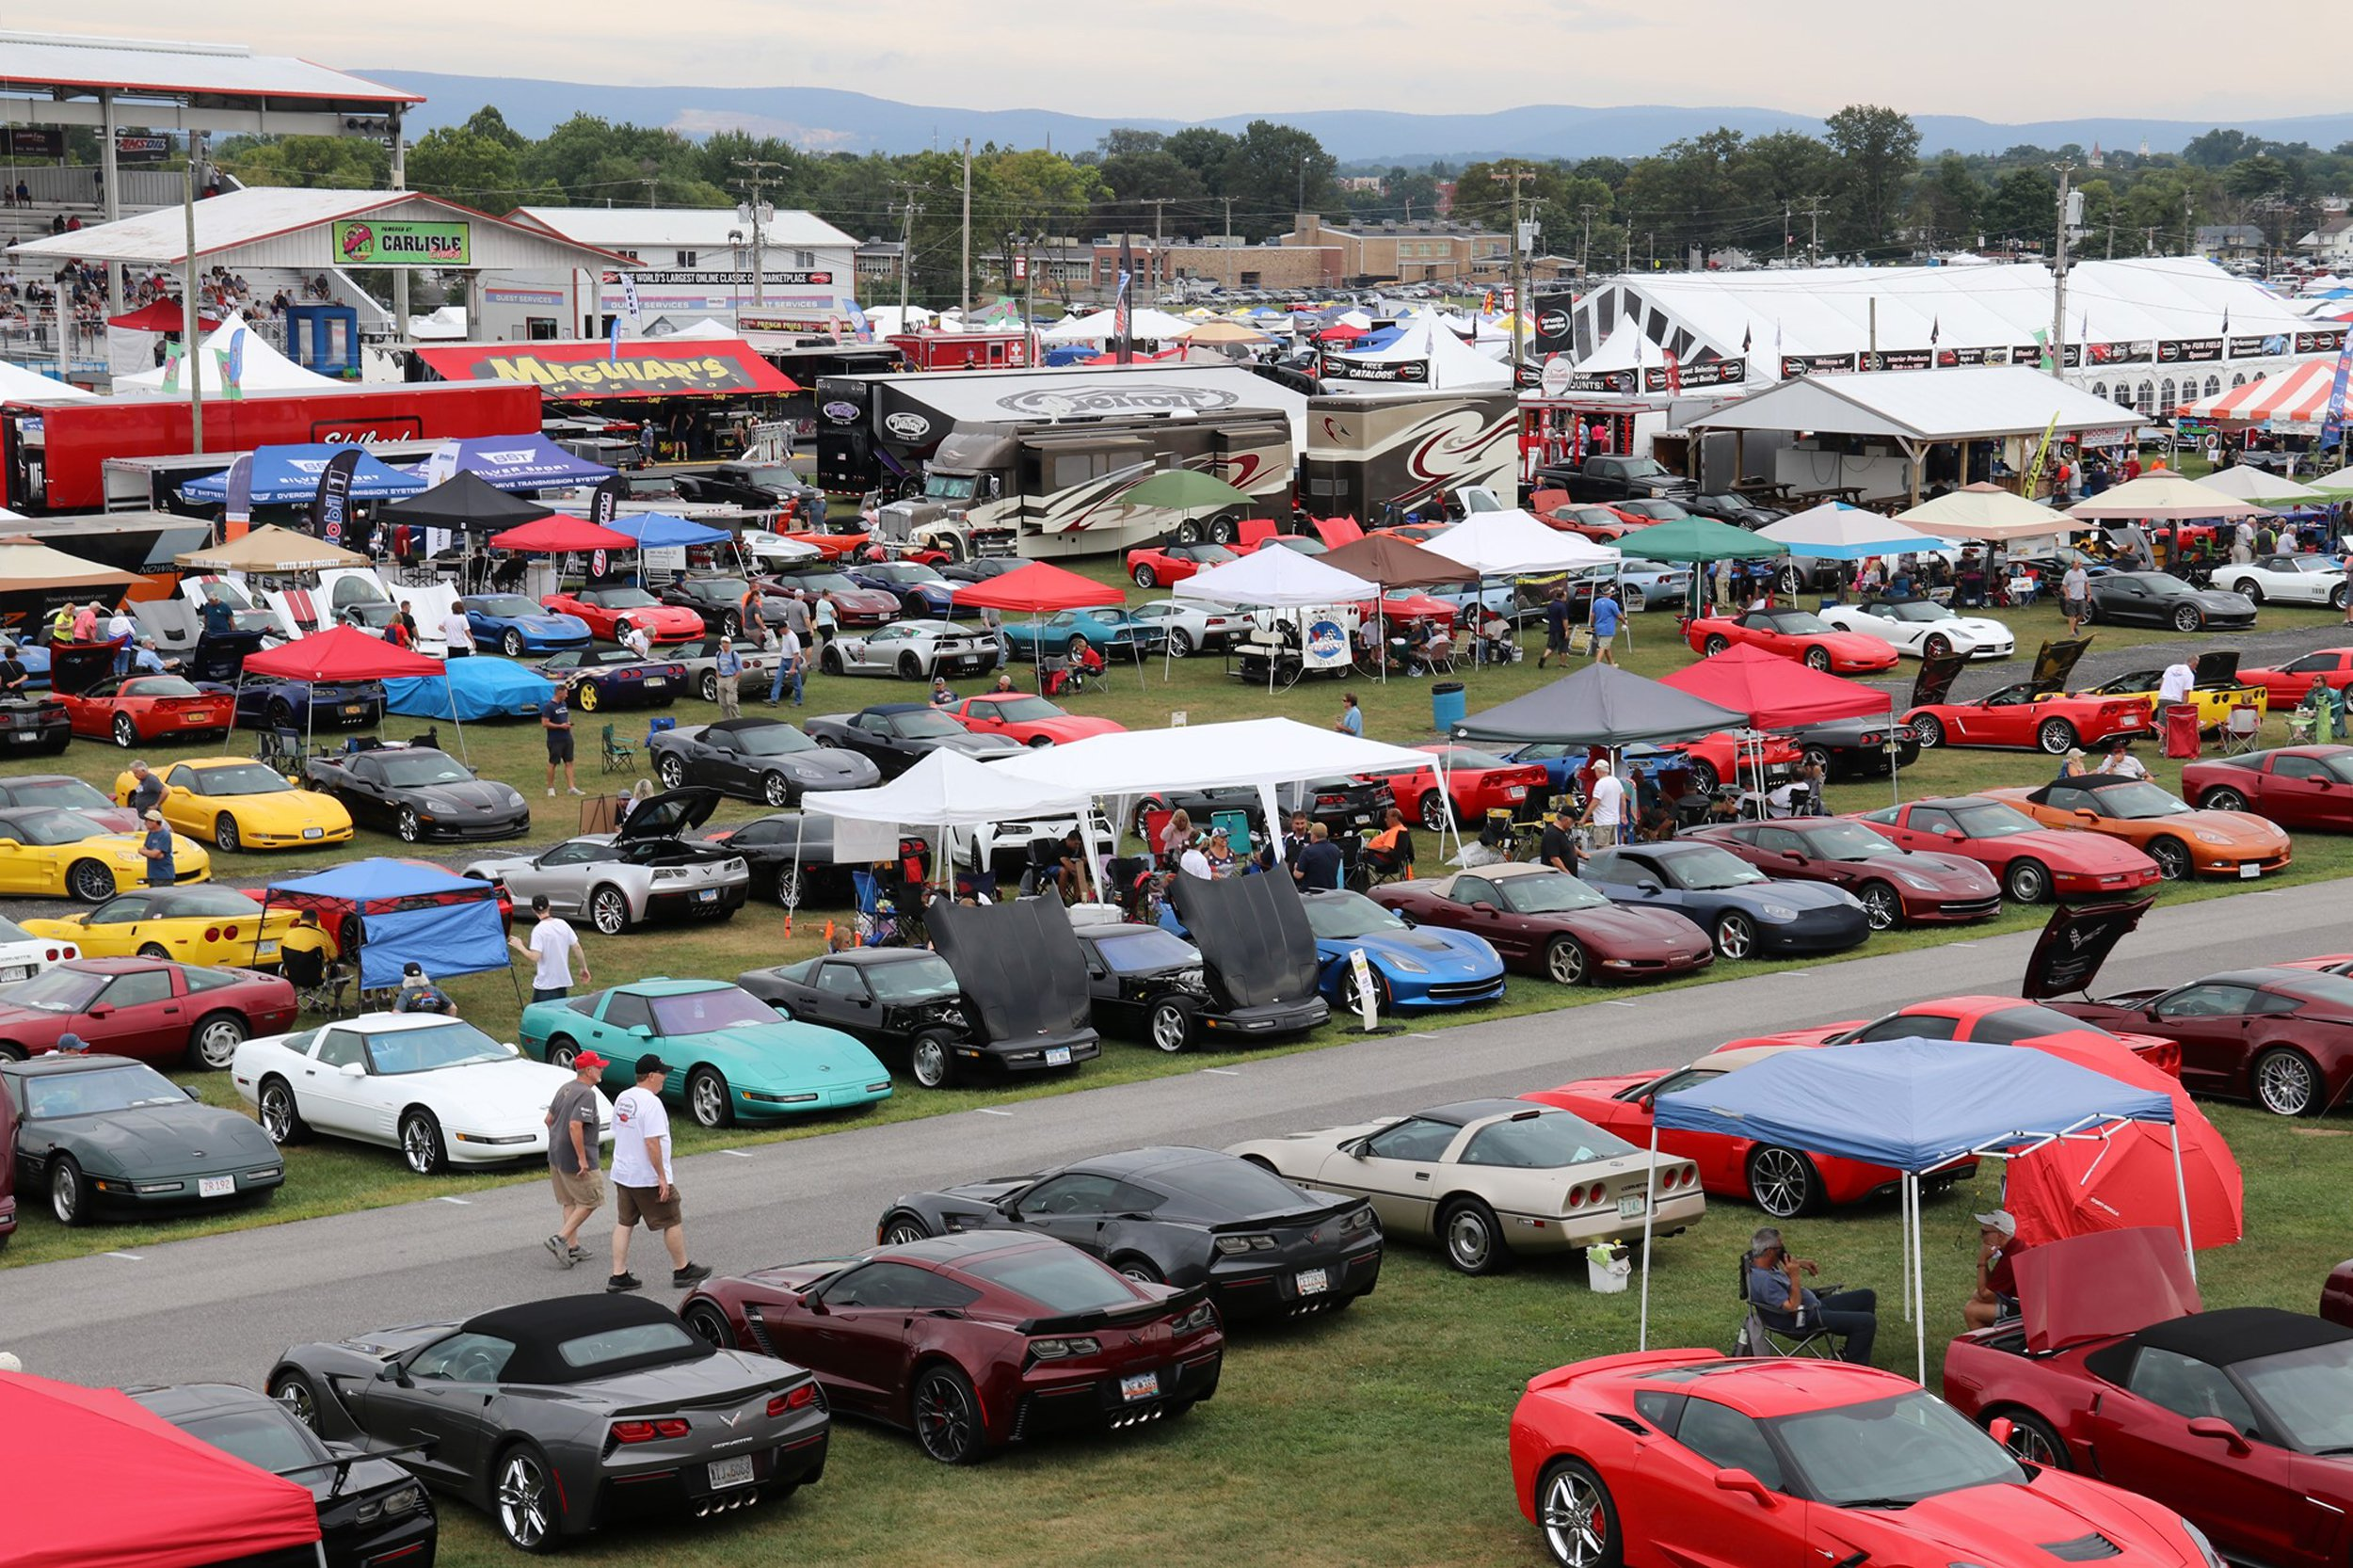 corvettes-at-carlisle-2019-one-for-the-record-books-2019-08-28_20-21-58_532293.jpg